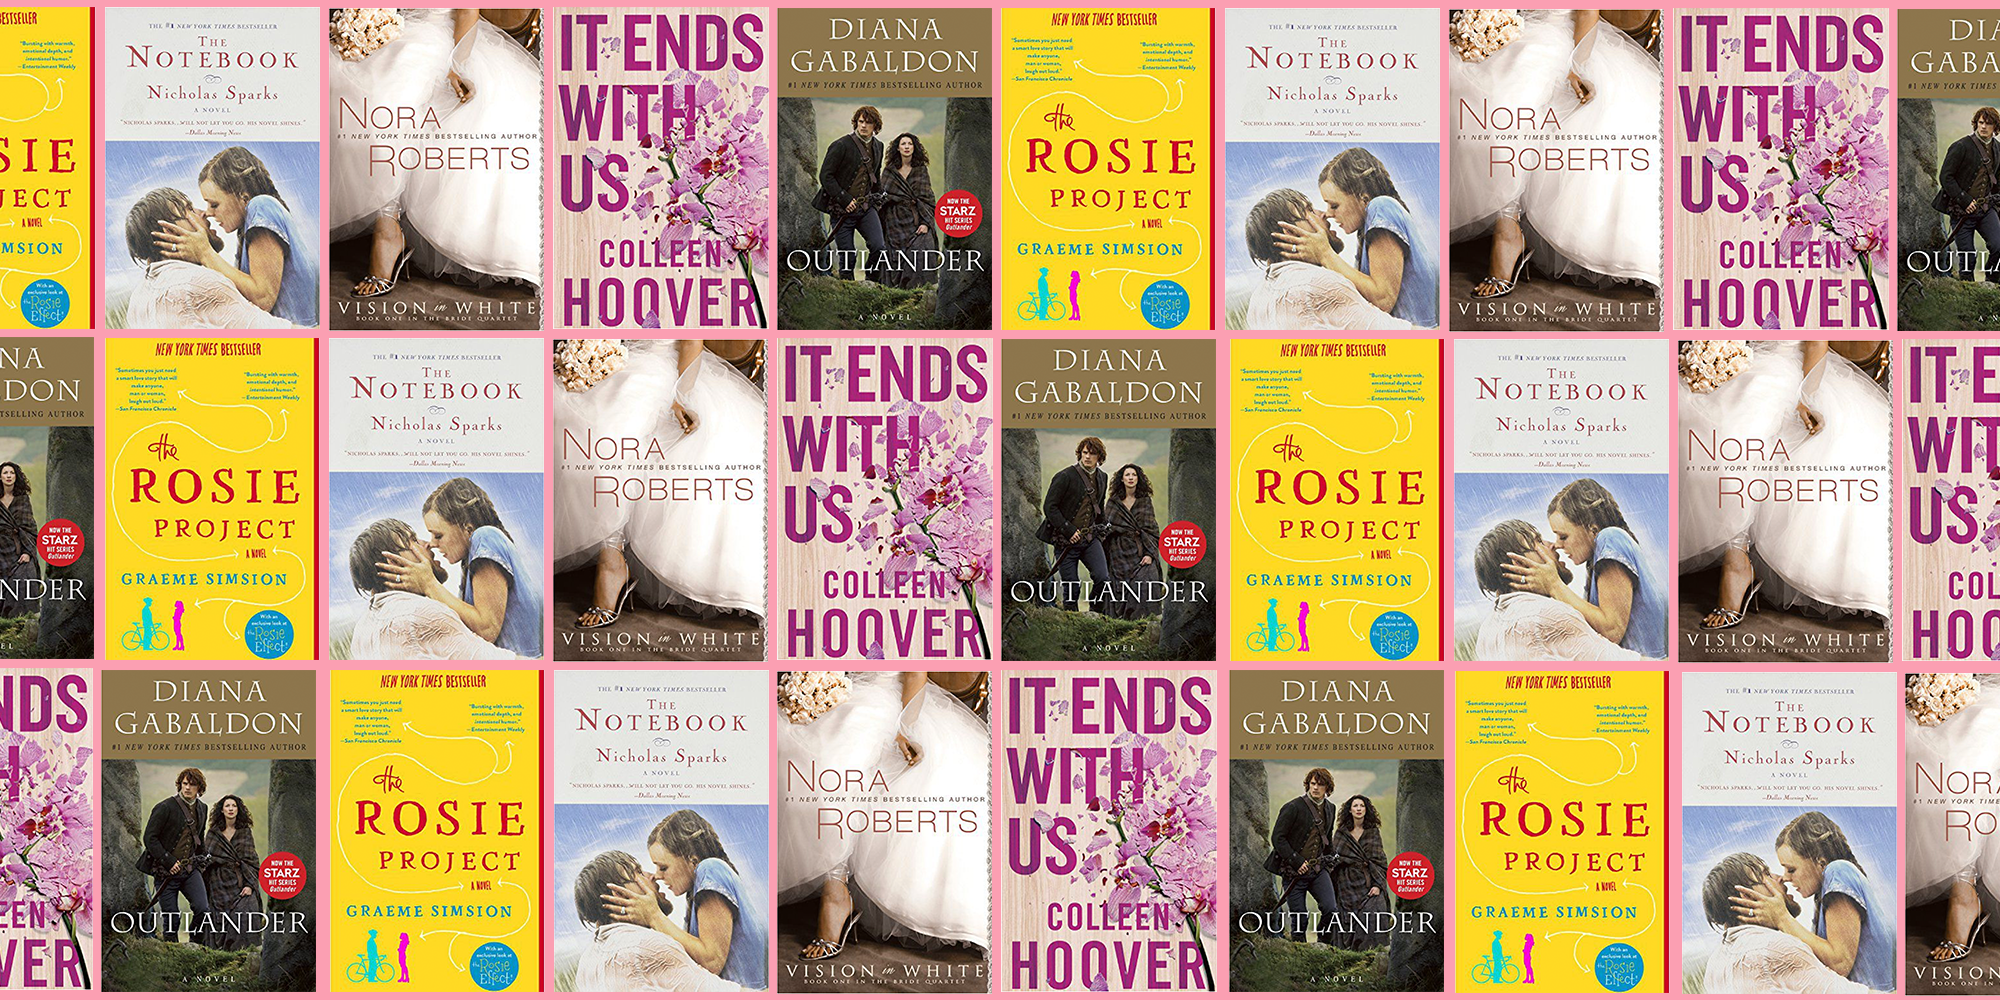 The 20 Greatest Ever Romance Novels, According to Goodreads Reviews